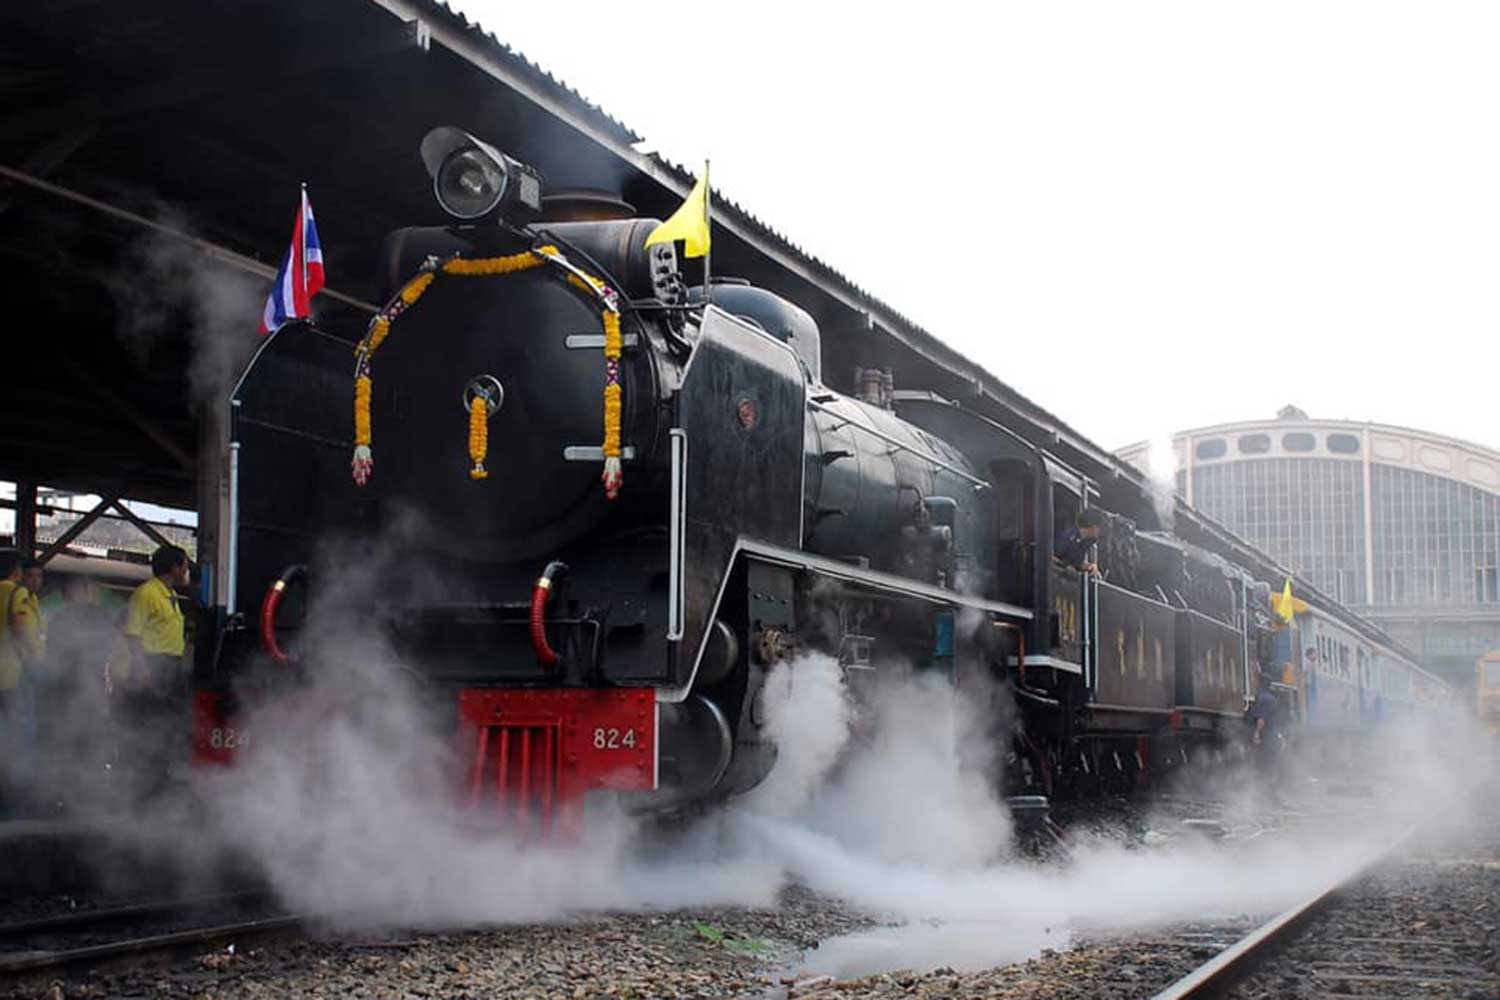 The State Railway of Thailand's 100-year-old steam locomotive. (Photo from @pr.railway Facebook page)